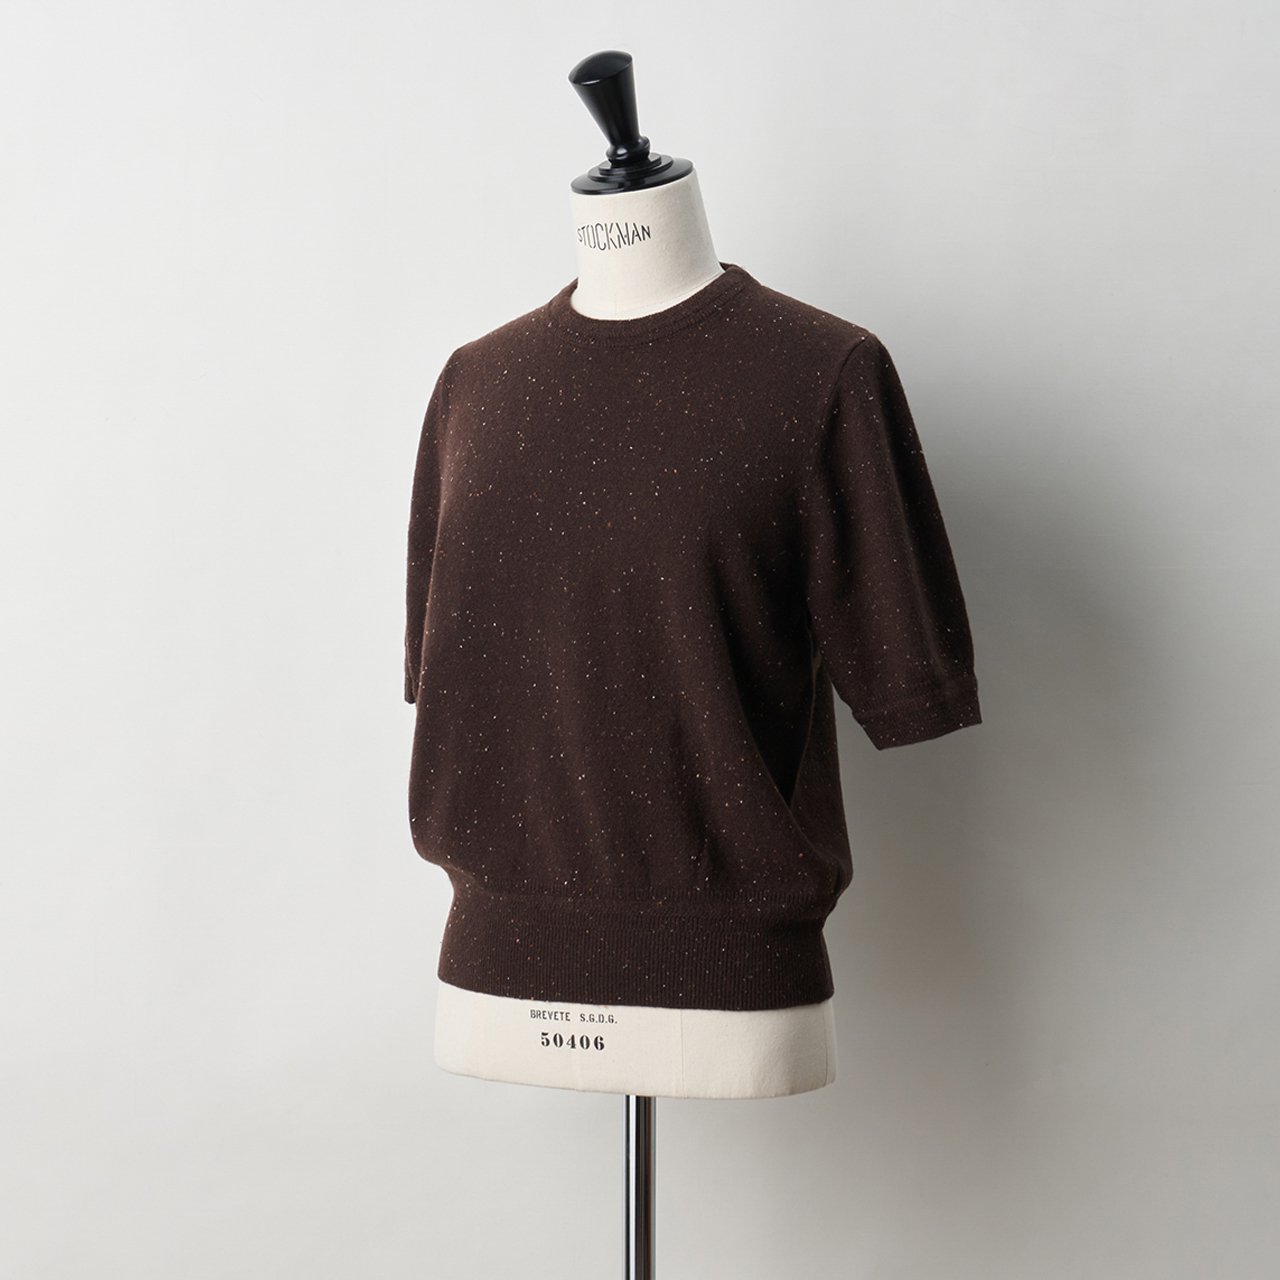 CASHMERE STARDUST HALF SLEEVE TOPS<BR>ALMOND CHOCOLATE